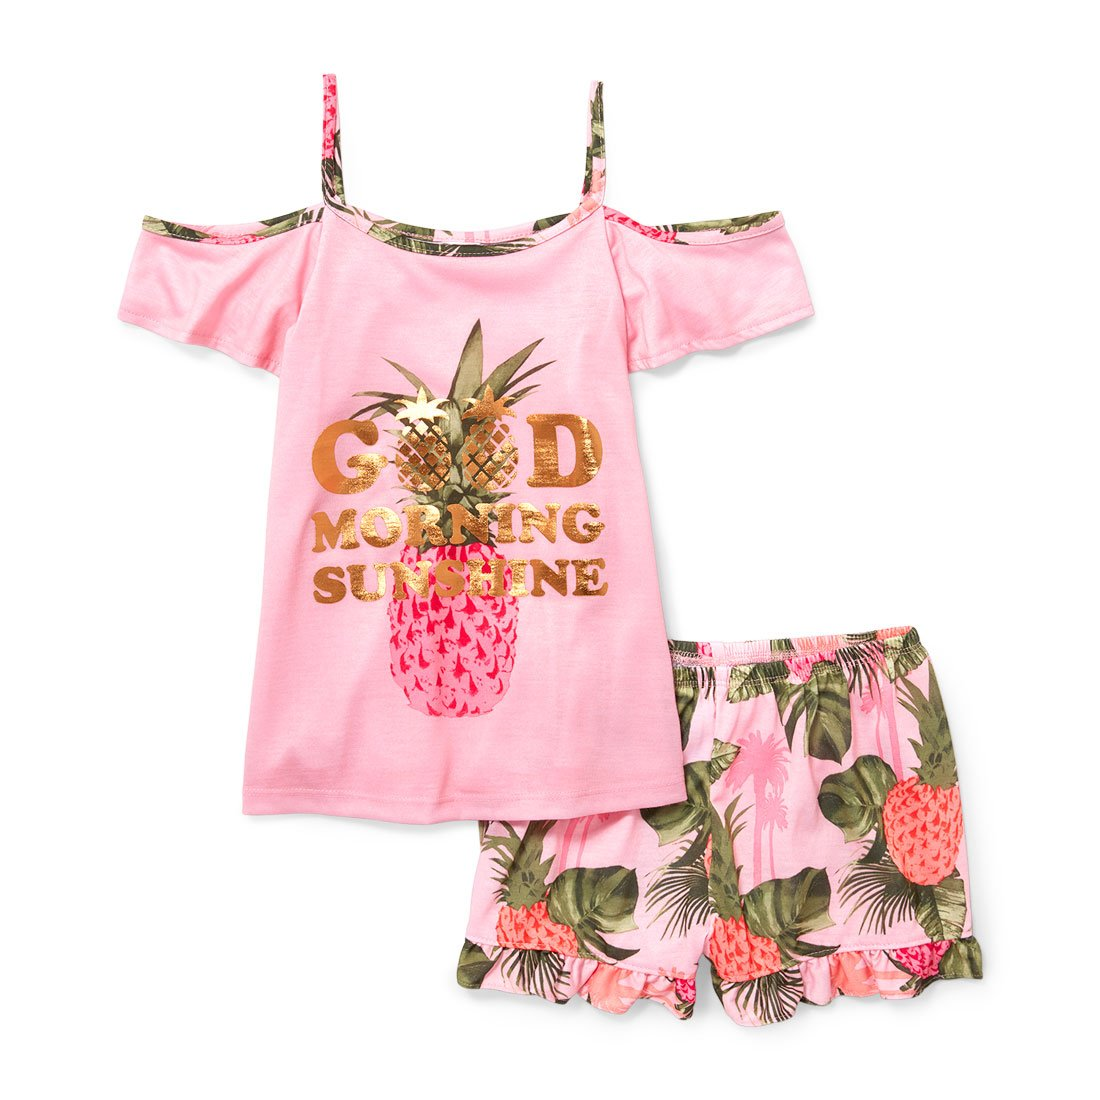 The Children's Place Girls Big Girls Top Shorts Pajama Set The Children's Place